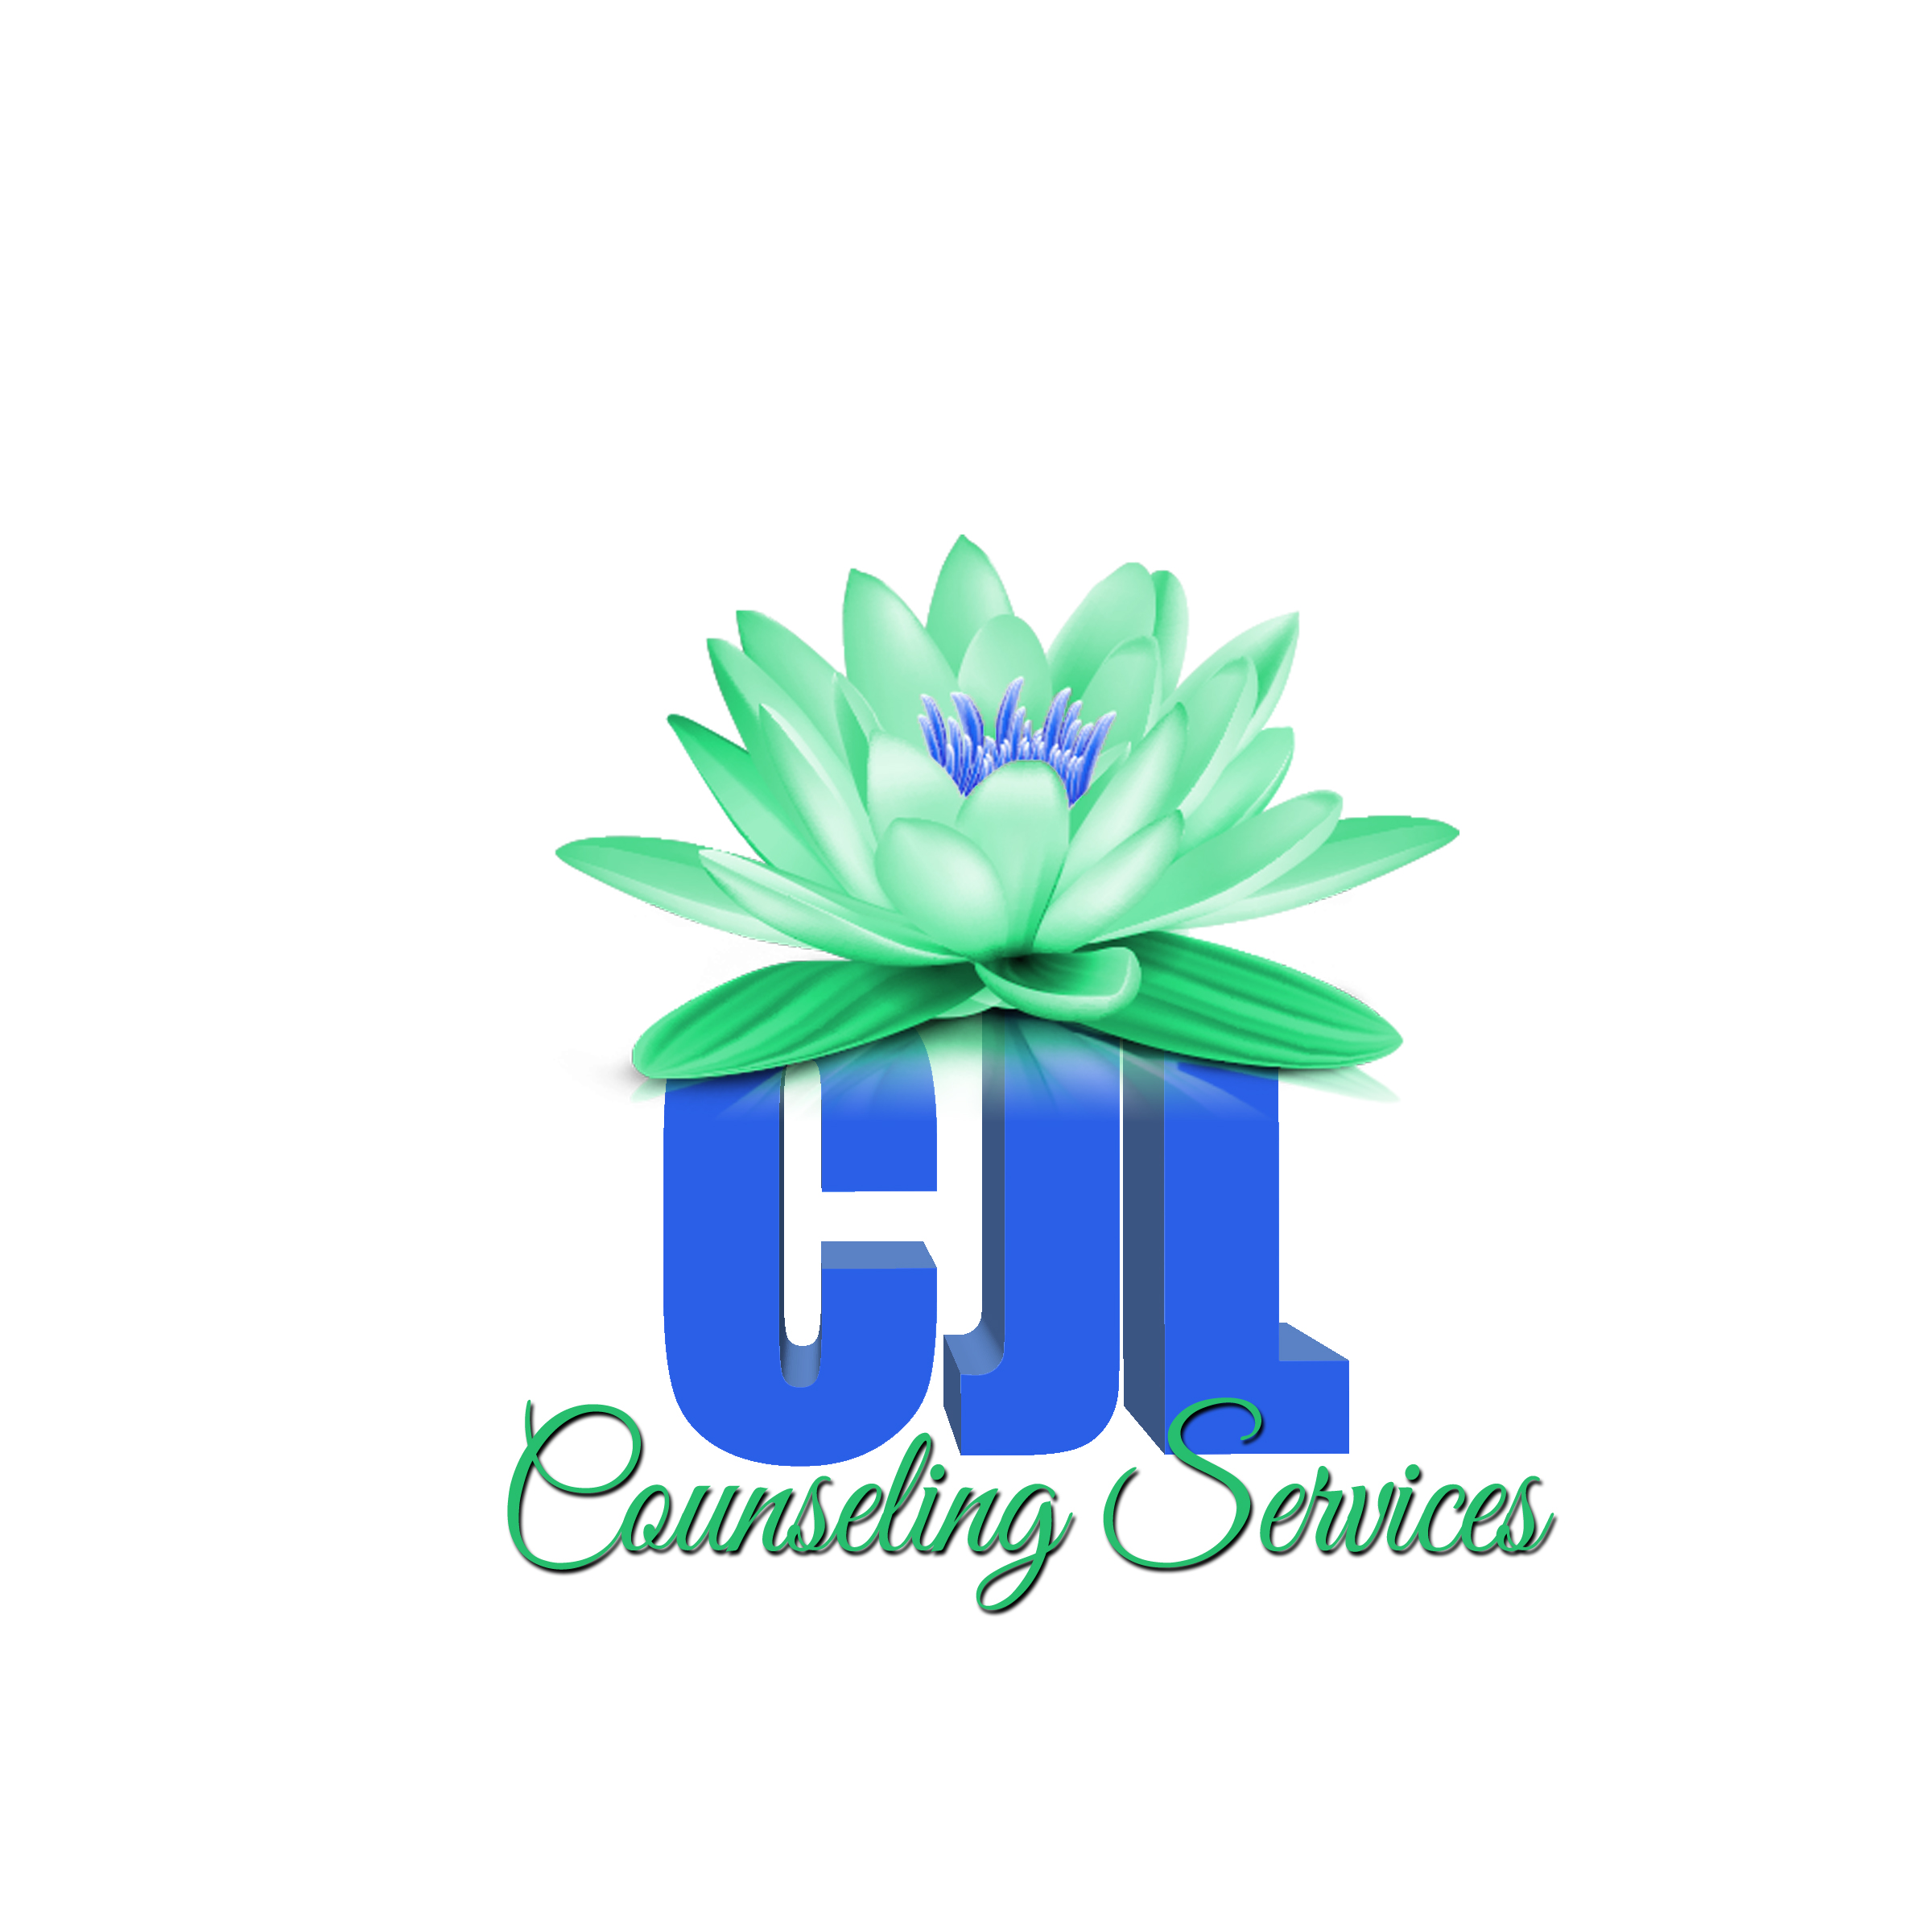 cjl counseling logo new.jpg